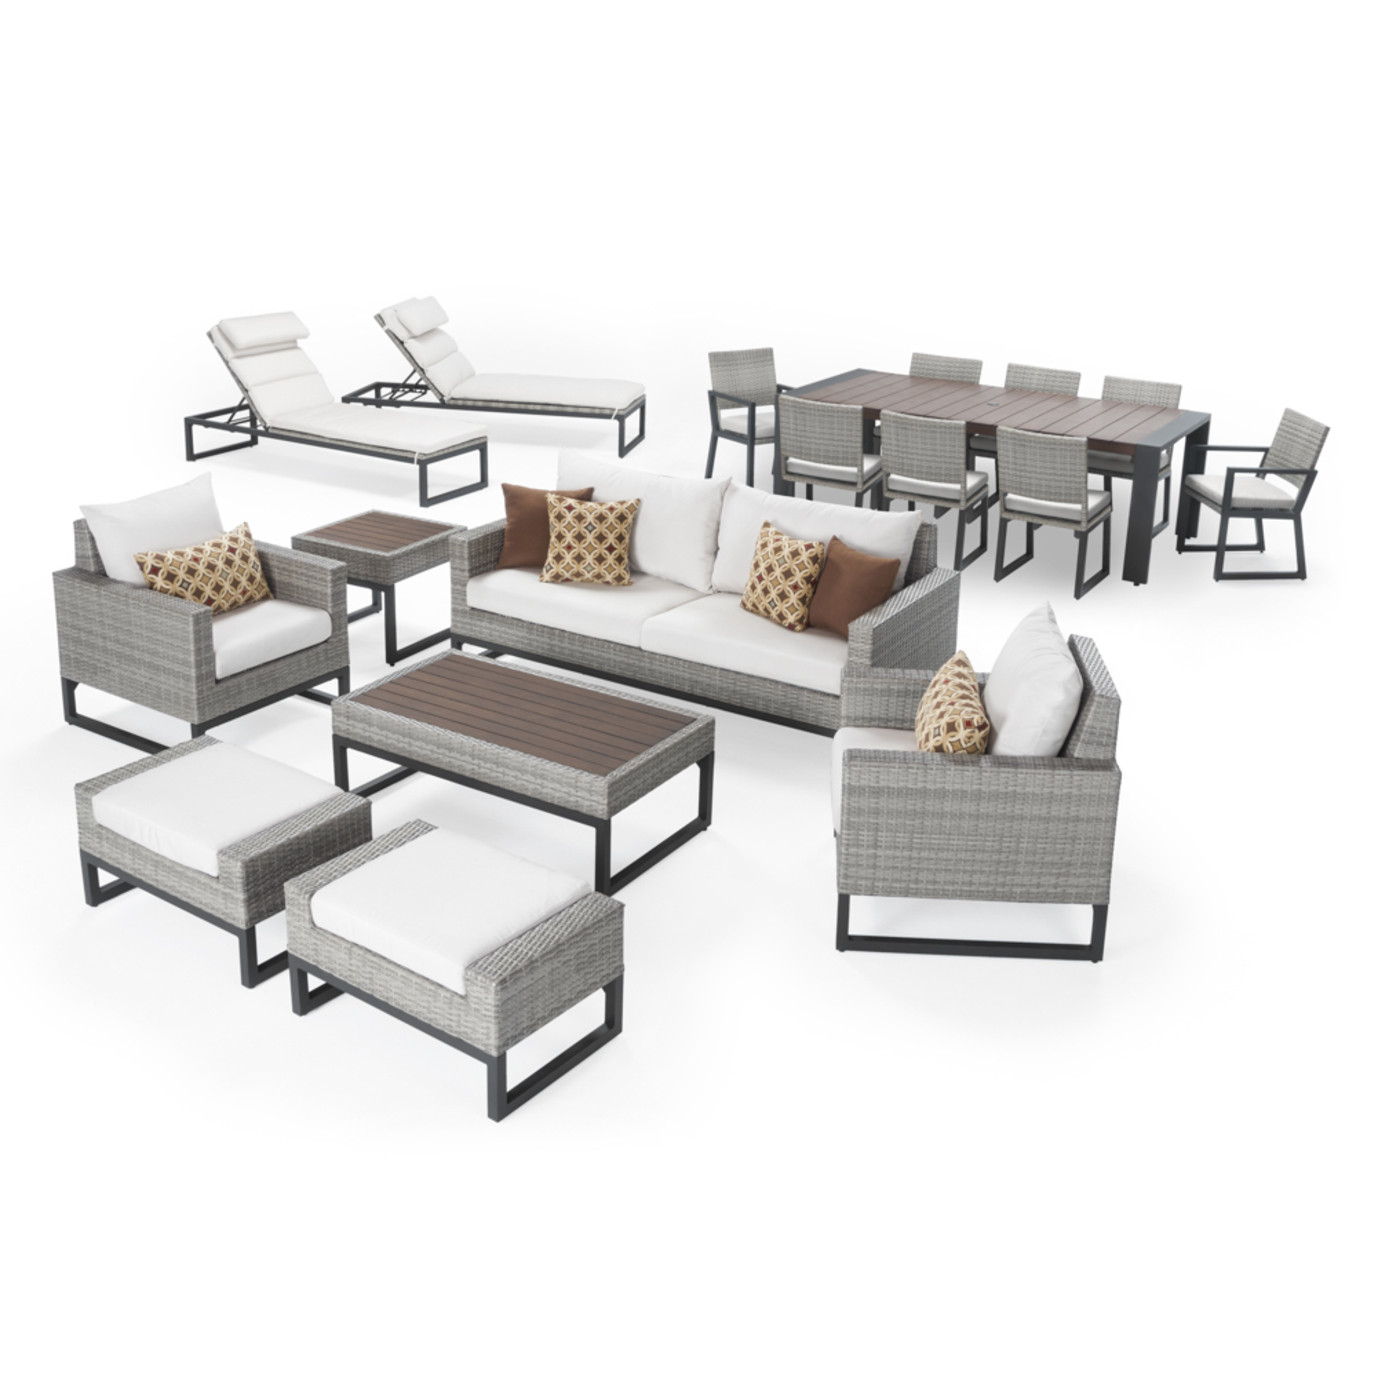 Milo™ Gray 18pc Estate Set - Moroccan Cream